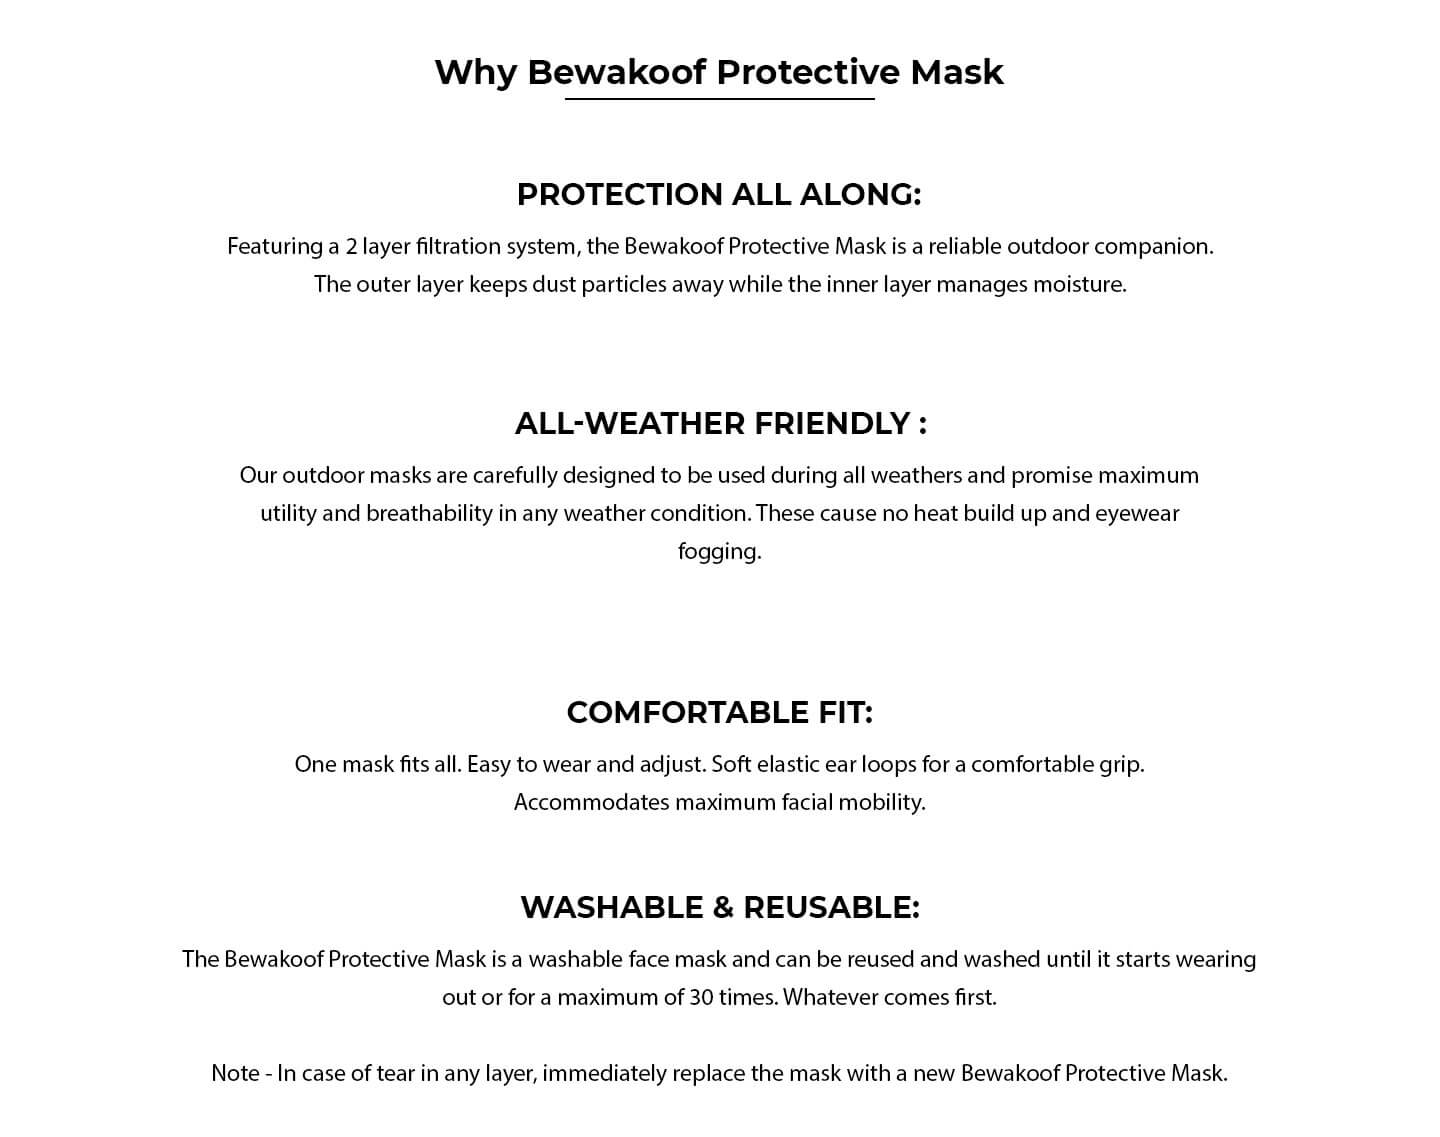 2-Layer Everyday Protective Mask - Pack of 3 (Polka dots, Bla Bla, We can) Description Image Website 1@Bewakoof.com